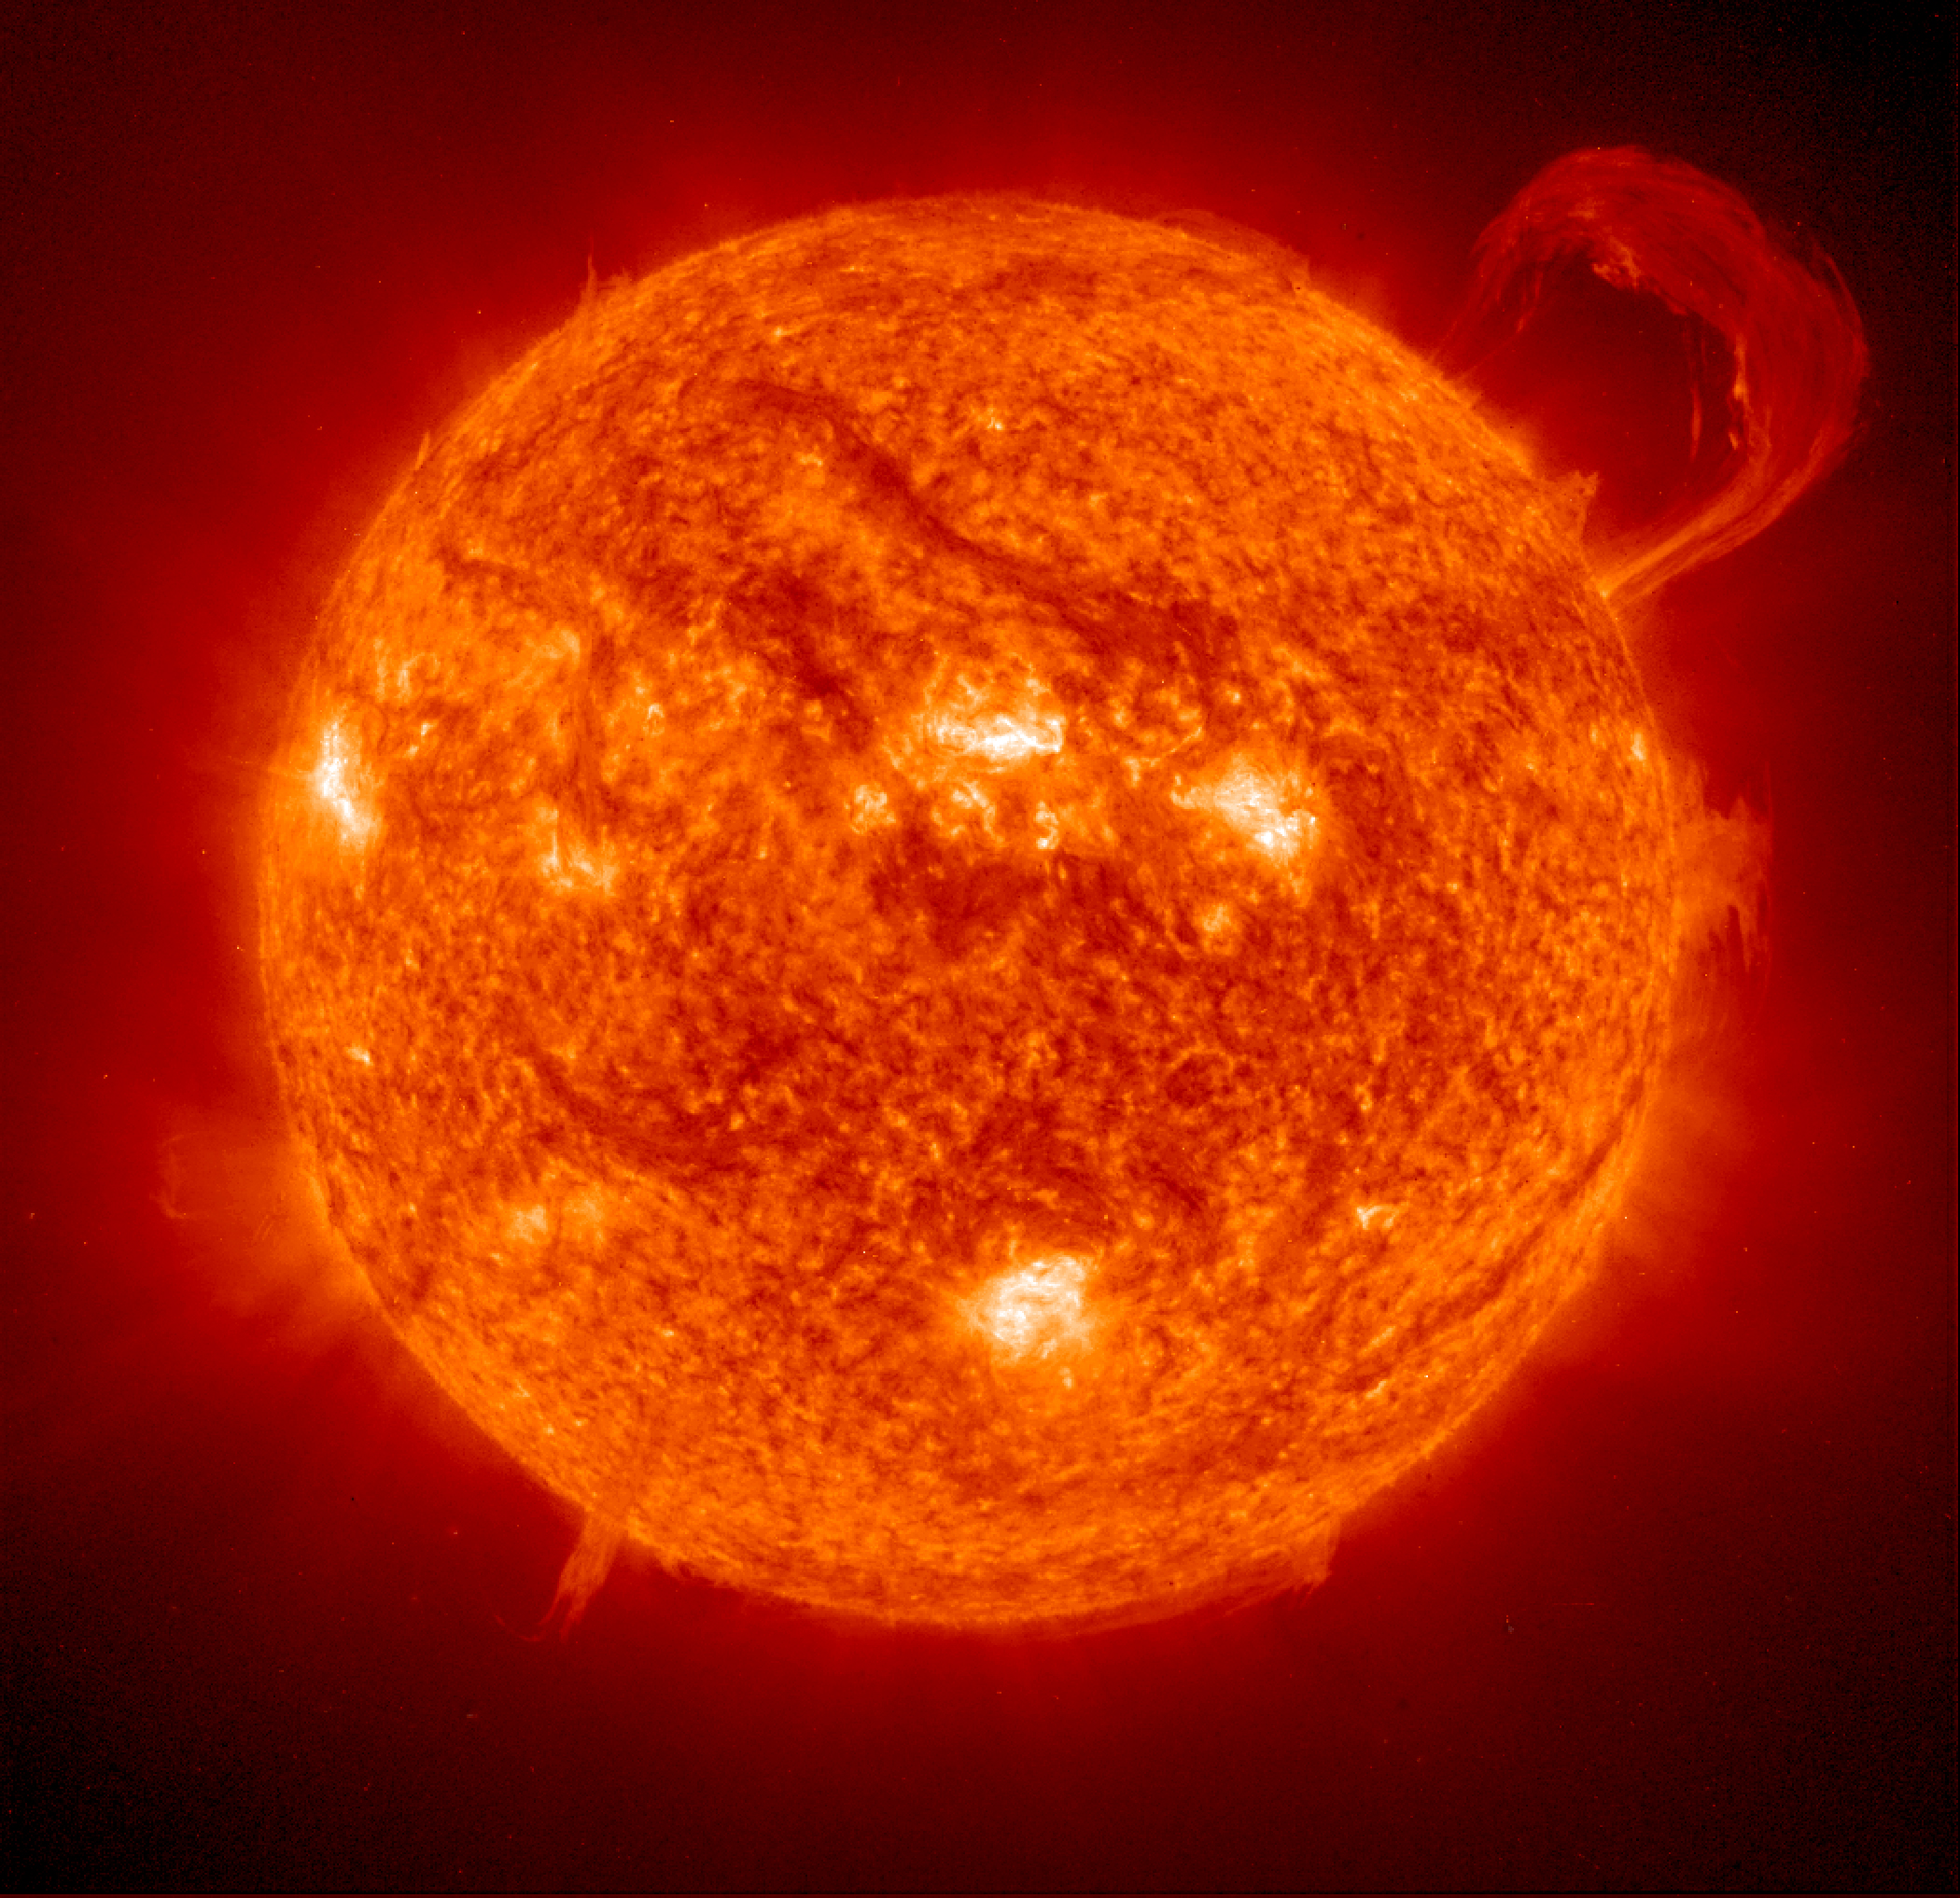 25. The solar atmosphere is much hotter than the surface